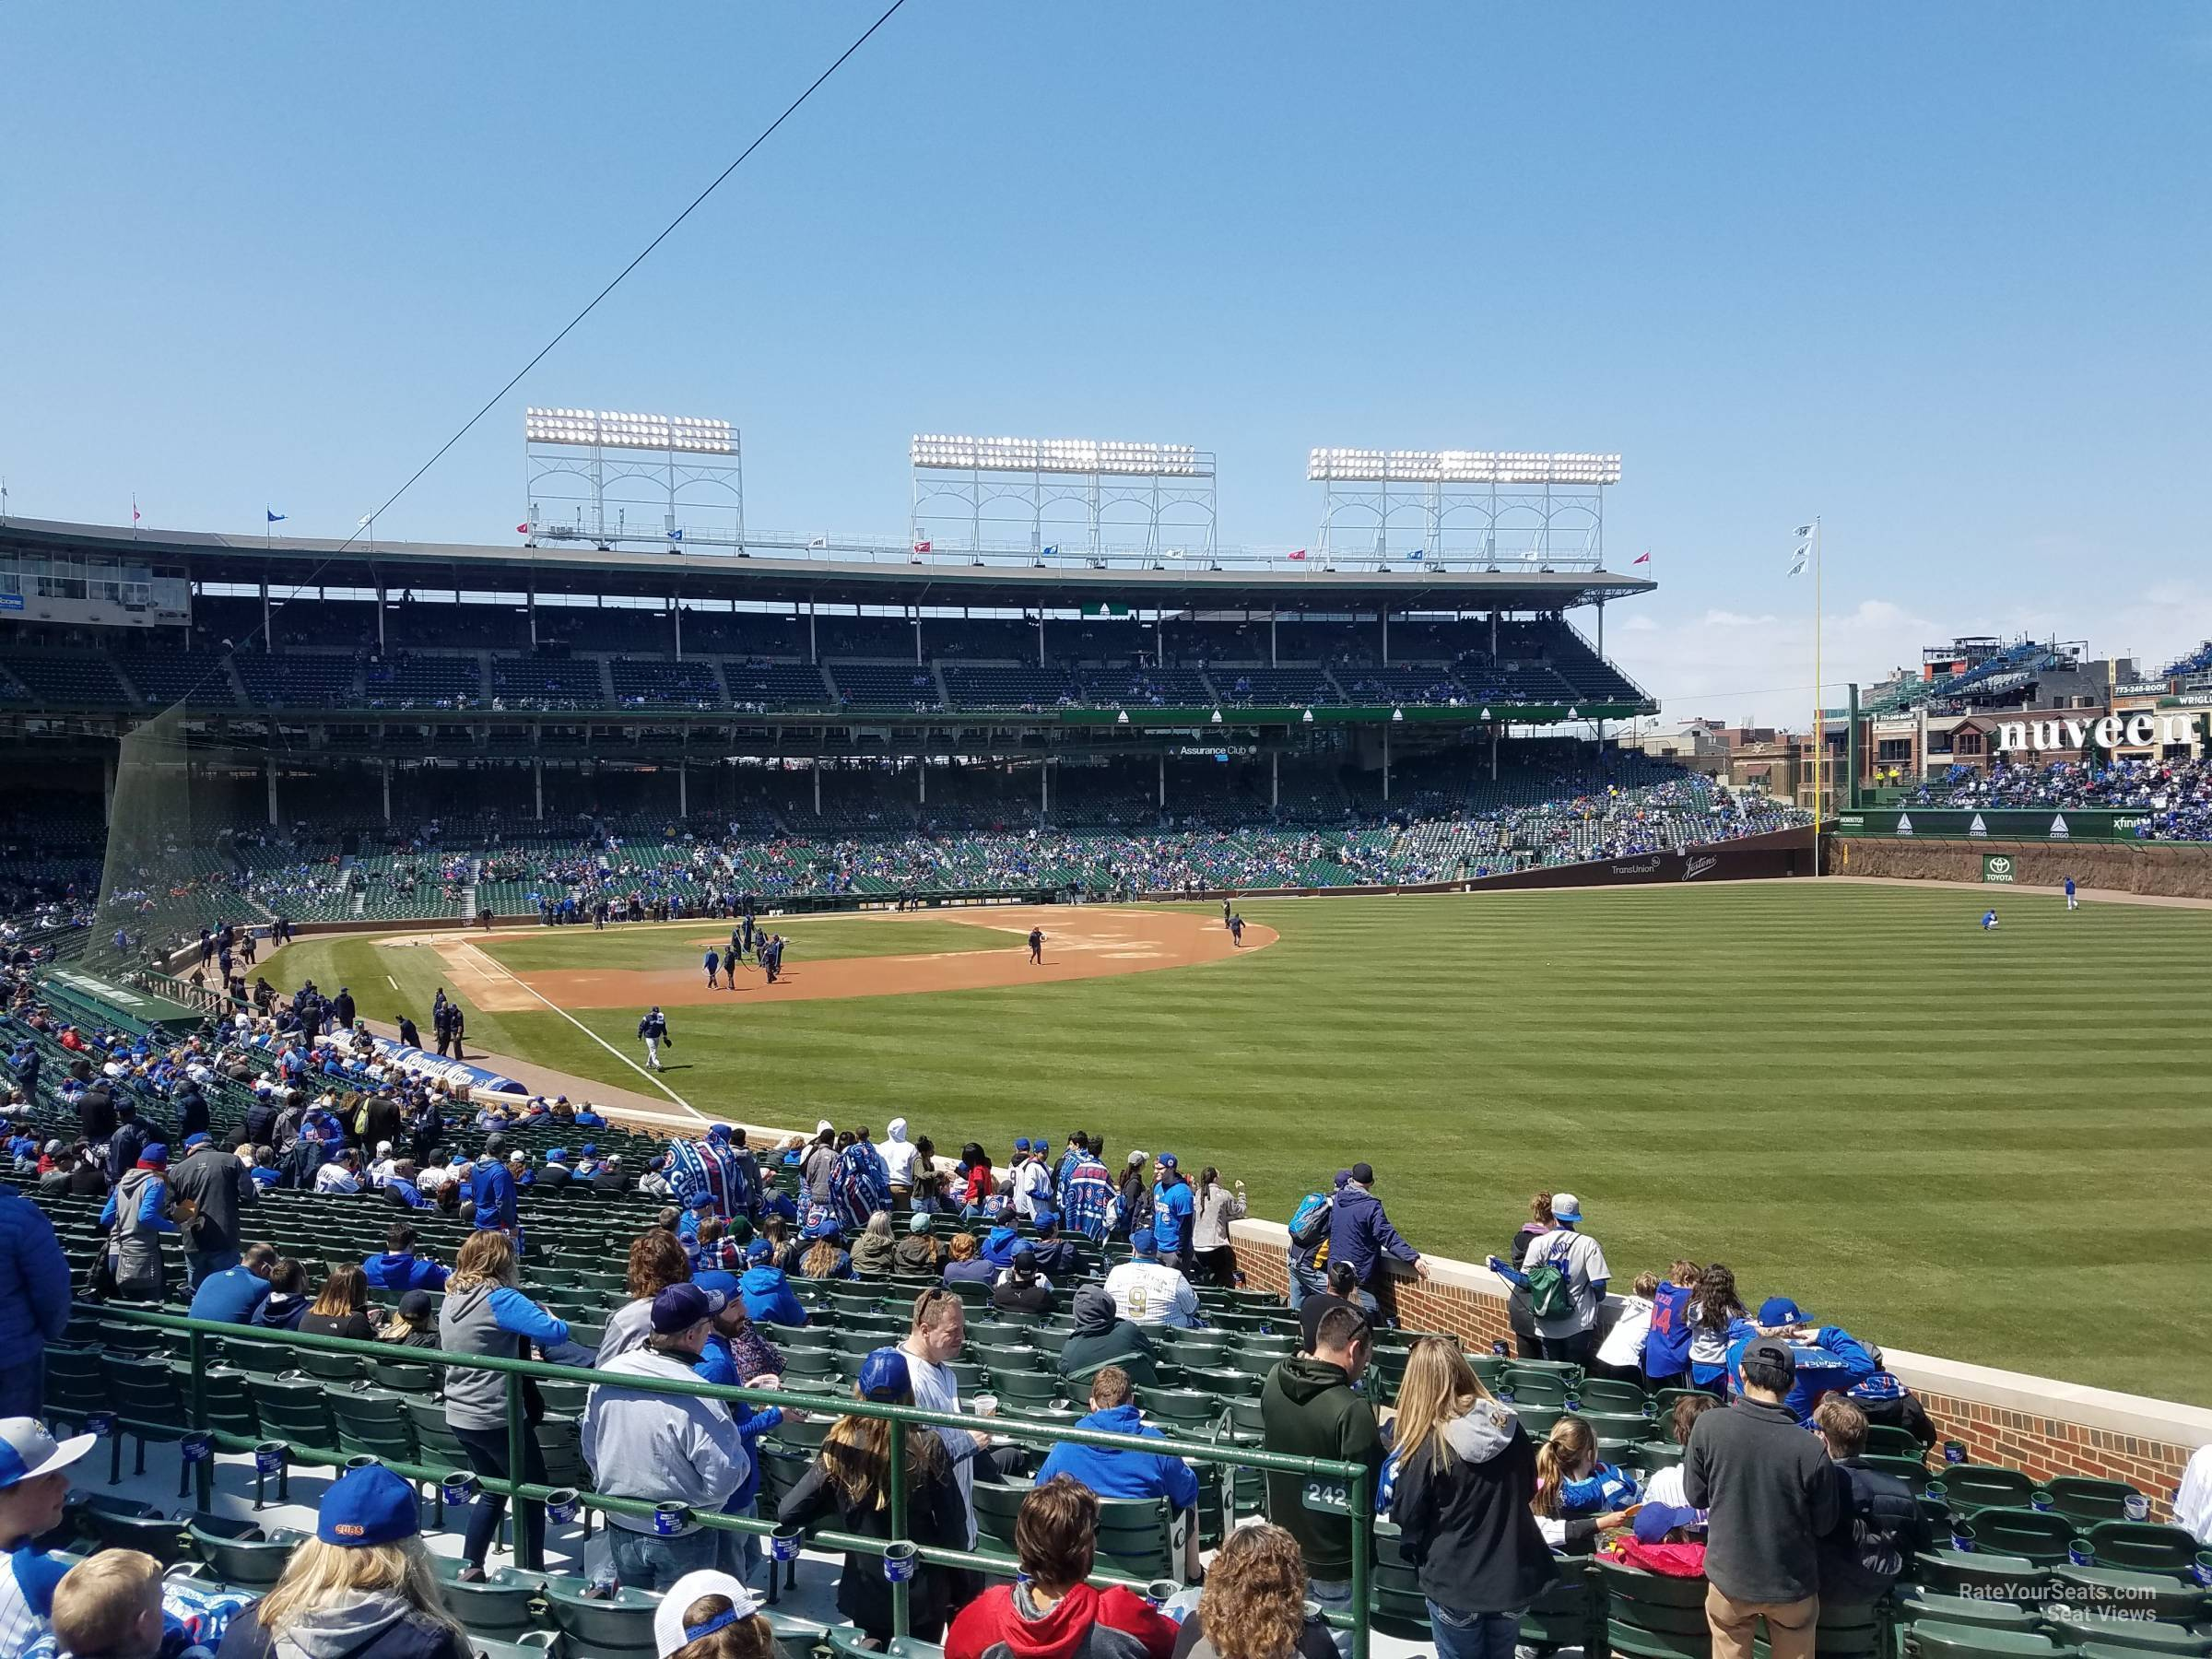 Wrigley Field Section 232 - Chicago Cubs - RateYourSeats.com